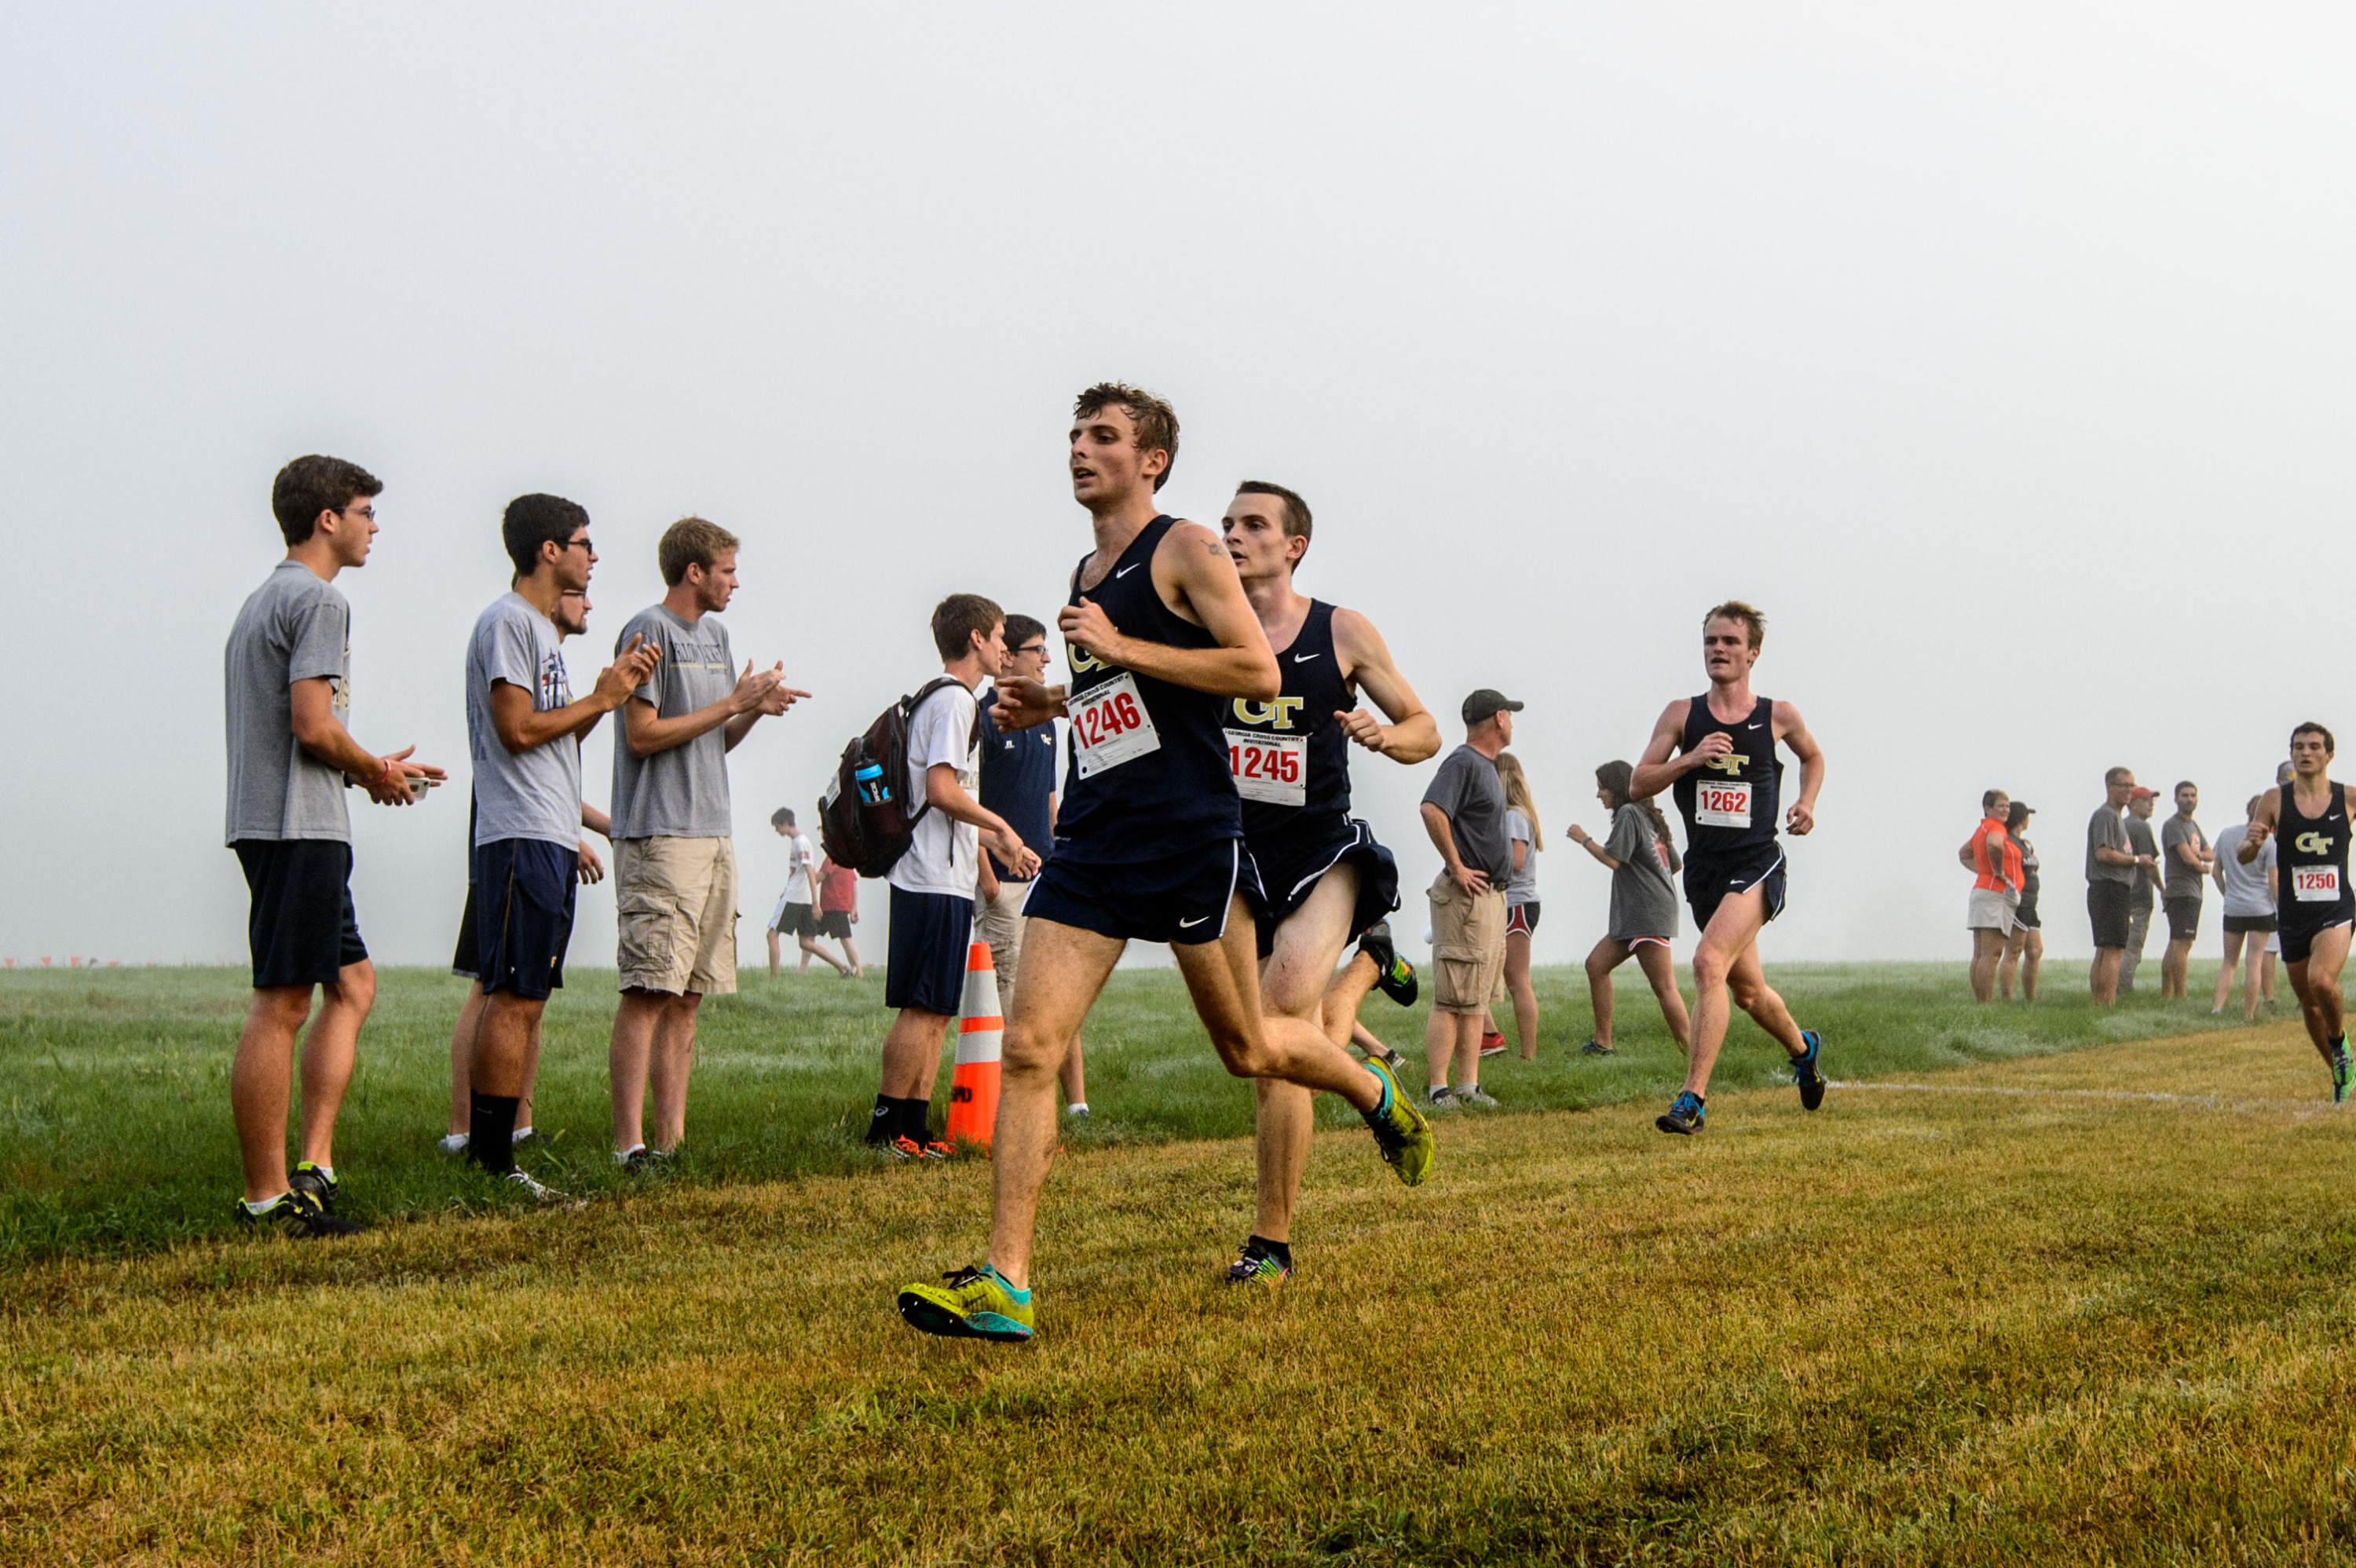 The Men's Cross Country team runs at the UGA Invitational